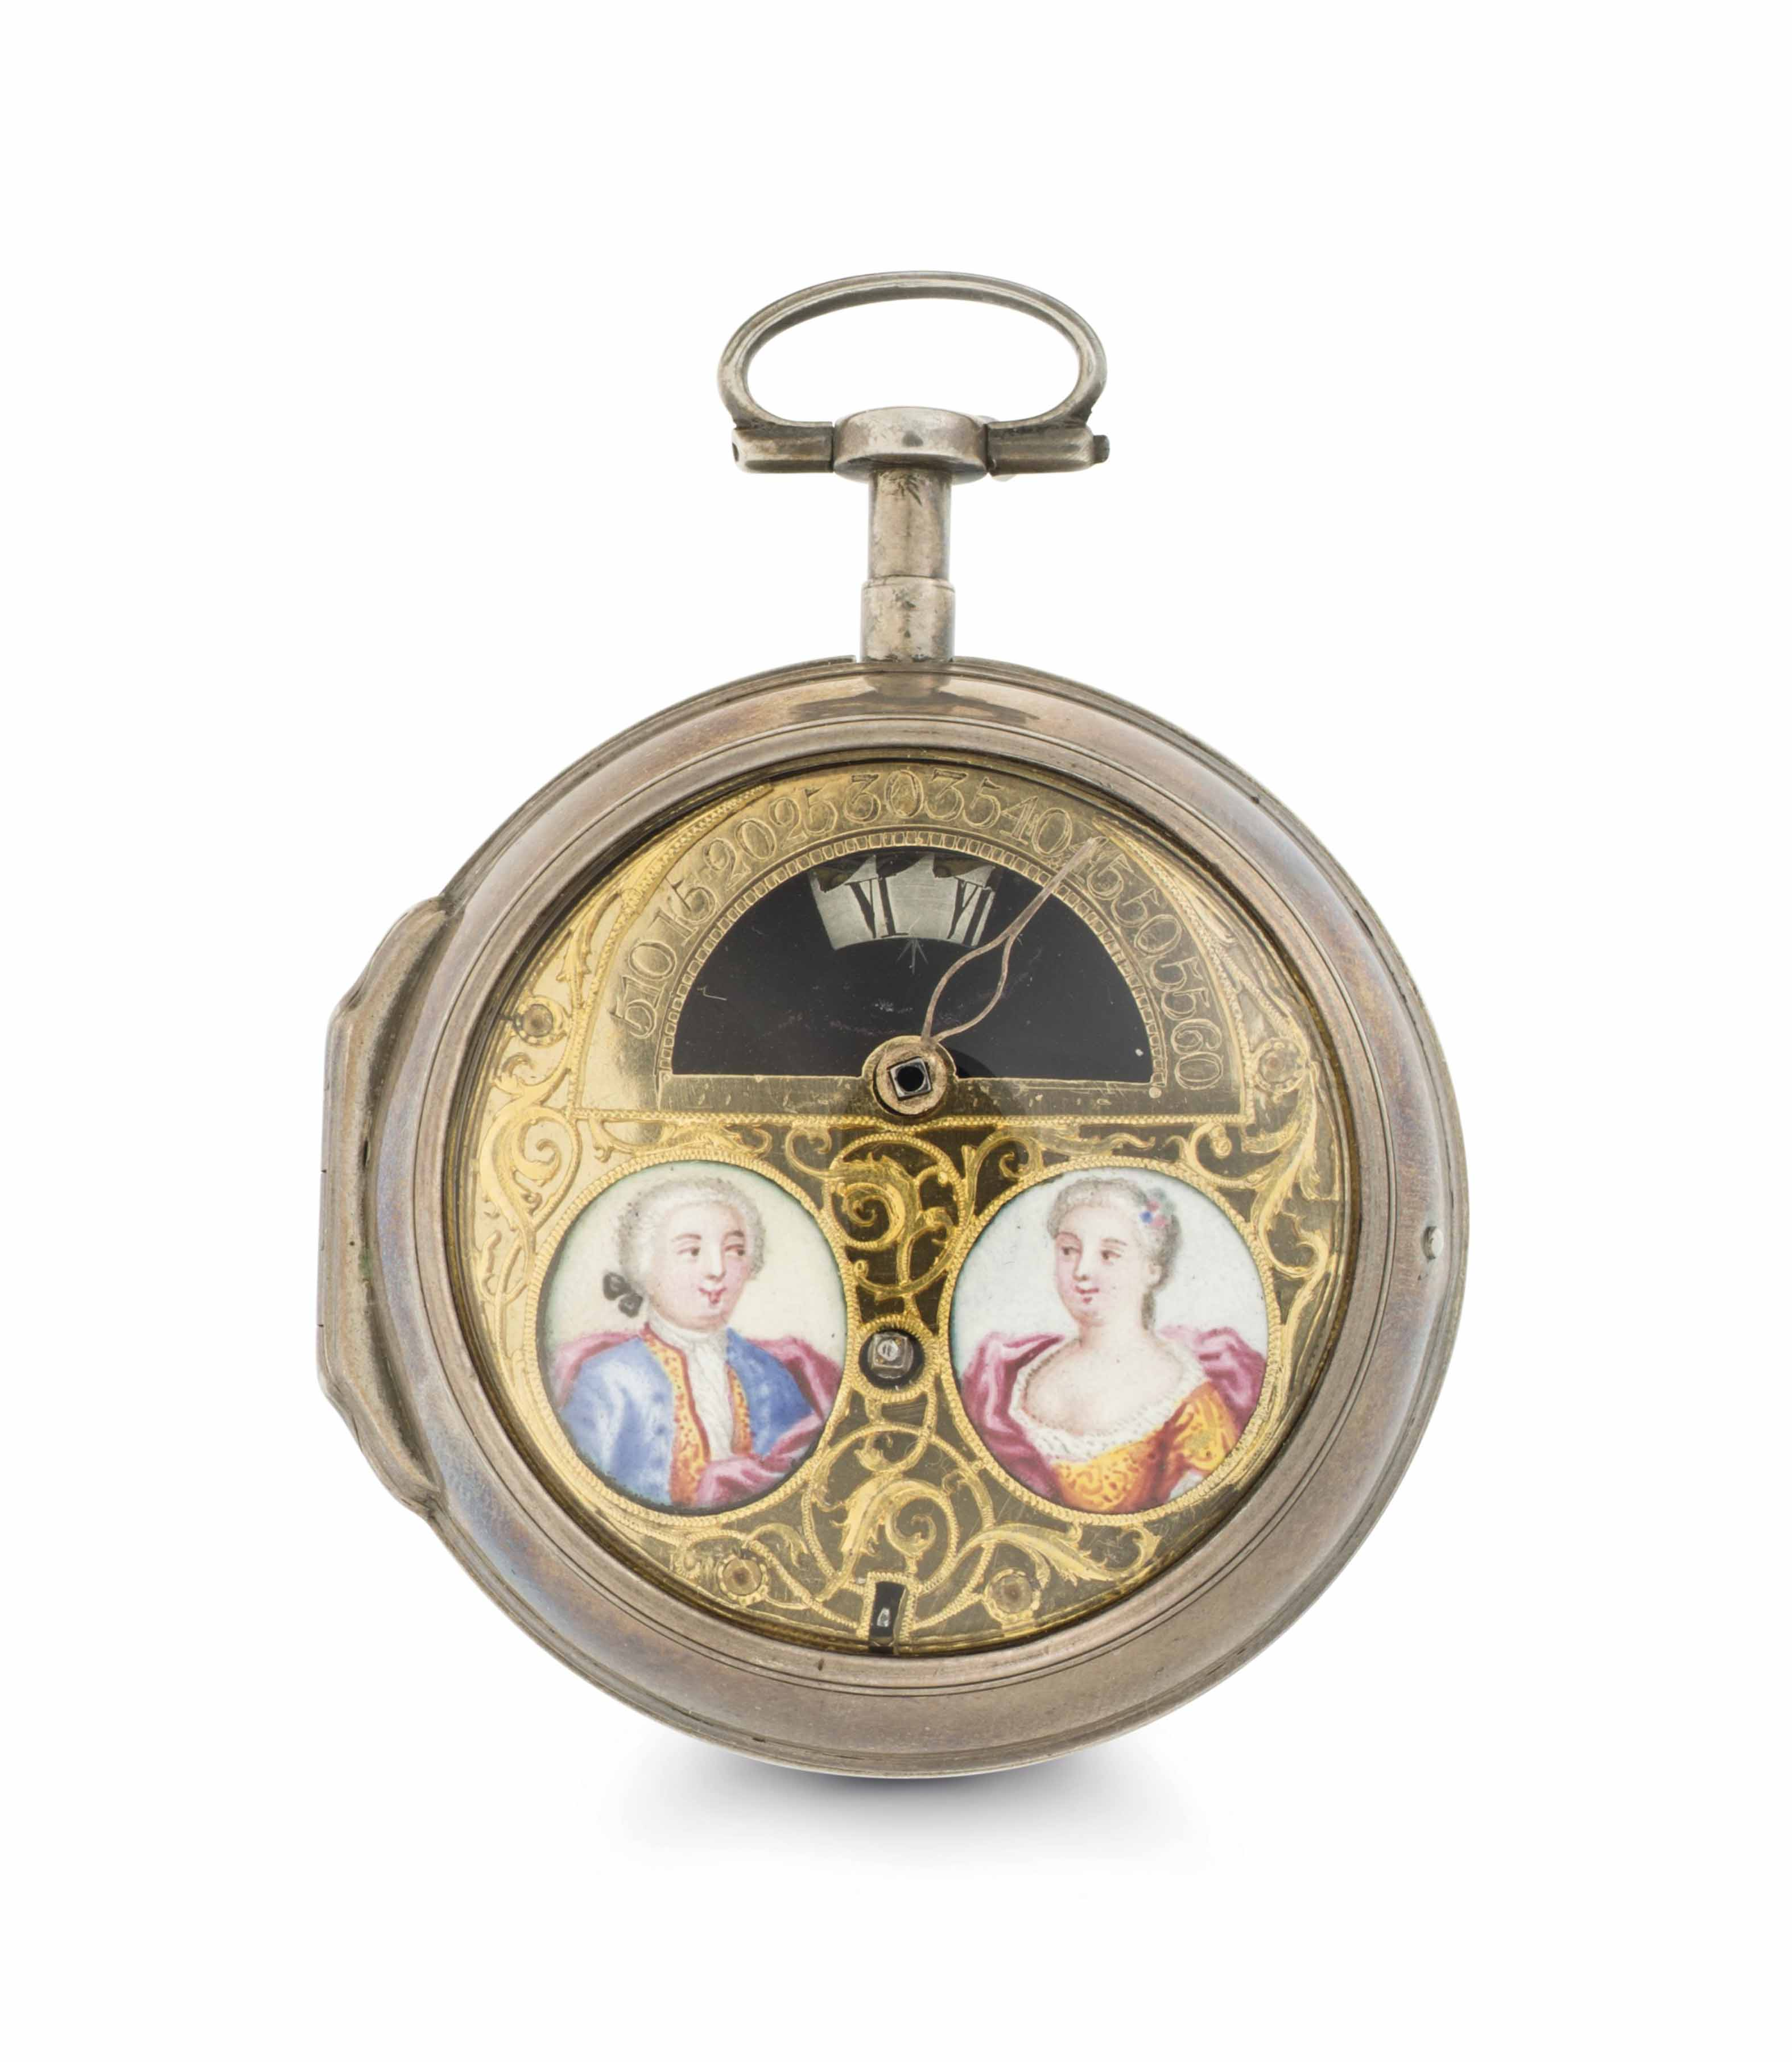 Ellicot. A Rare and Early Silver Openface Wandering Hour Verge Watch with Enamel Miniatures